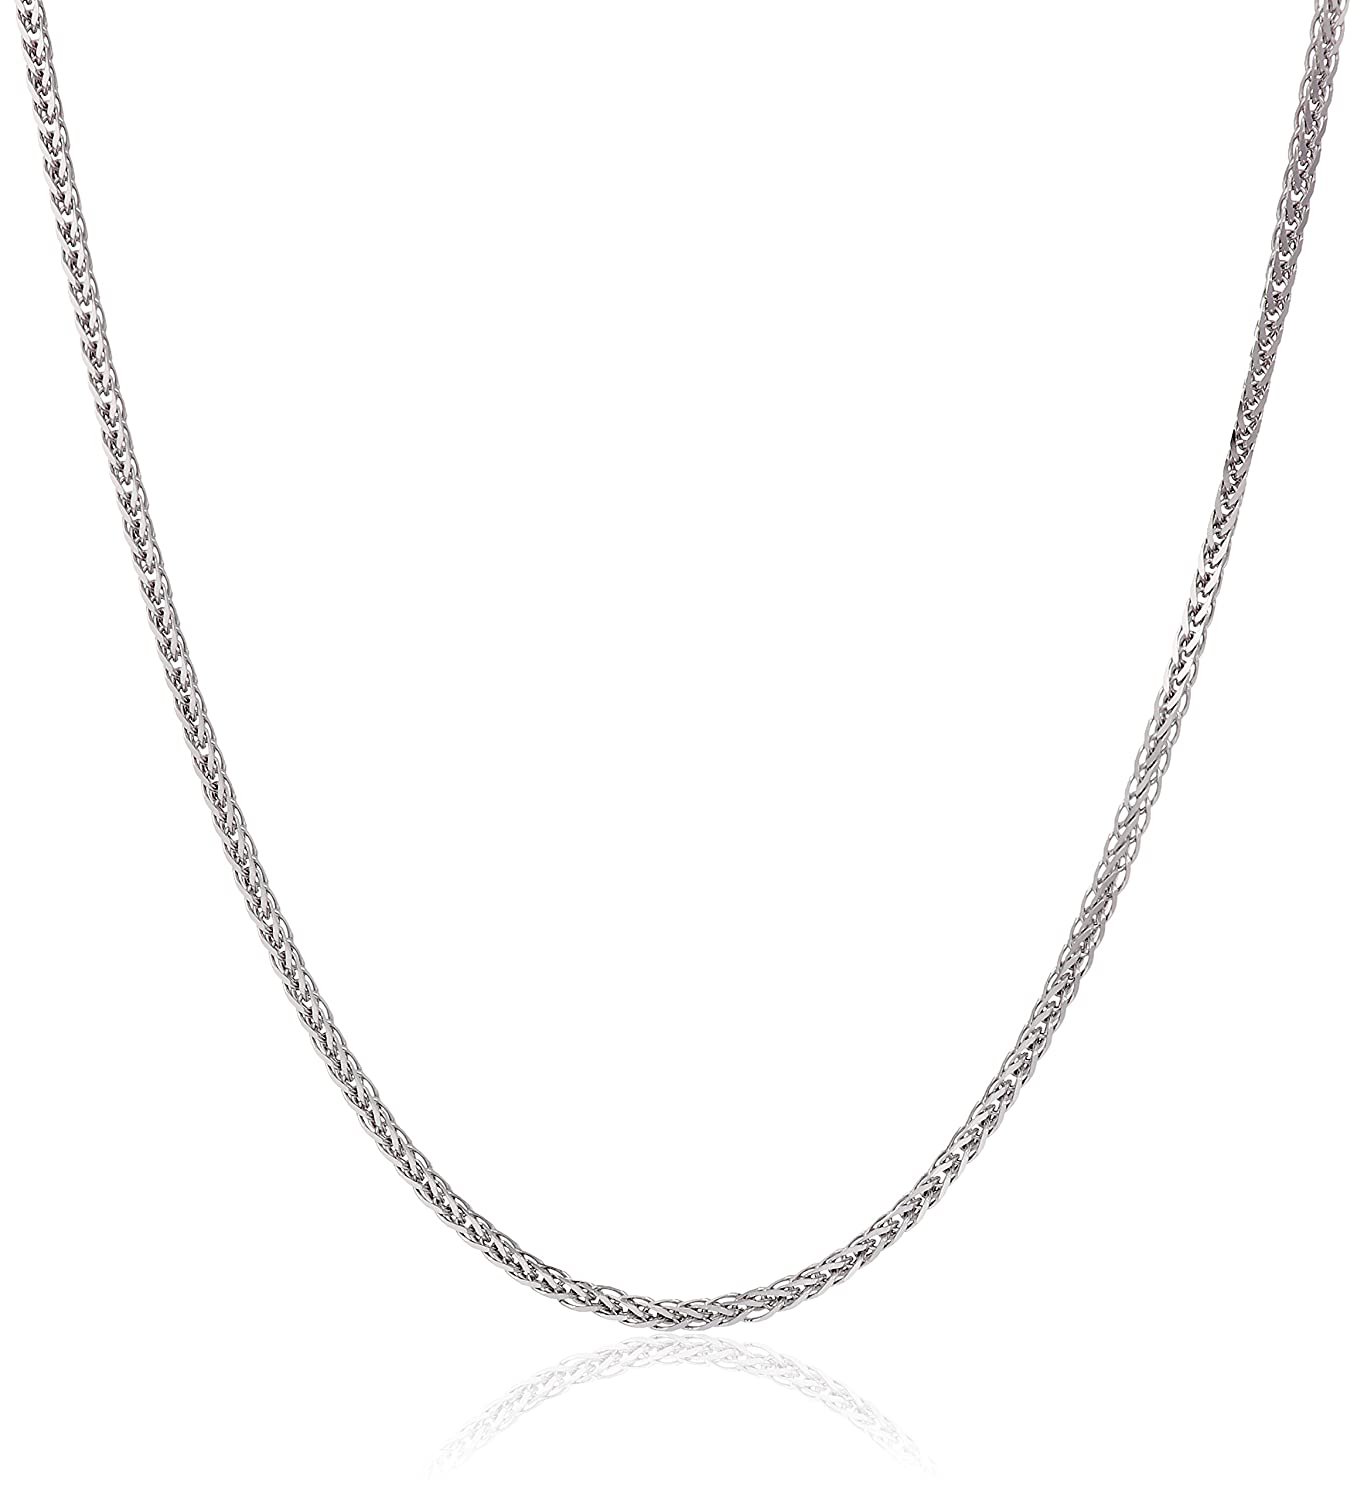 Italian Finest Jewelry Necklaces On Sale, White Gold, 18 kt White Gold, 2017, One Size